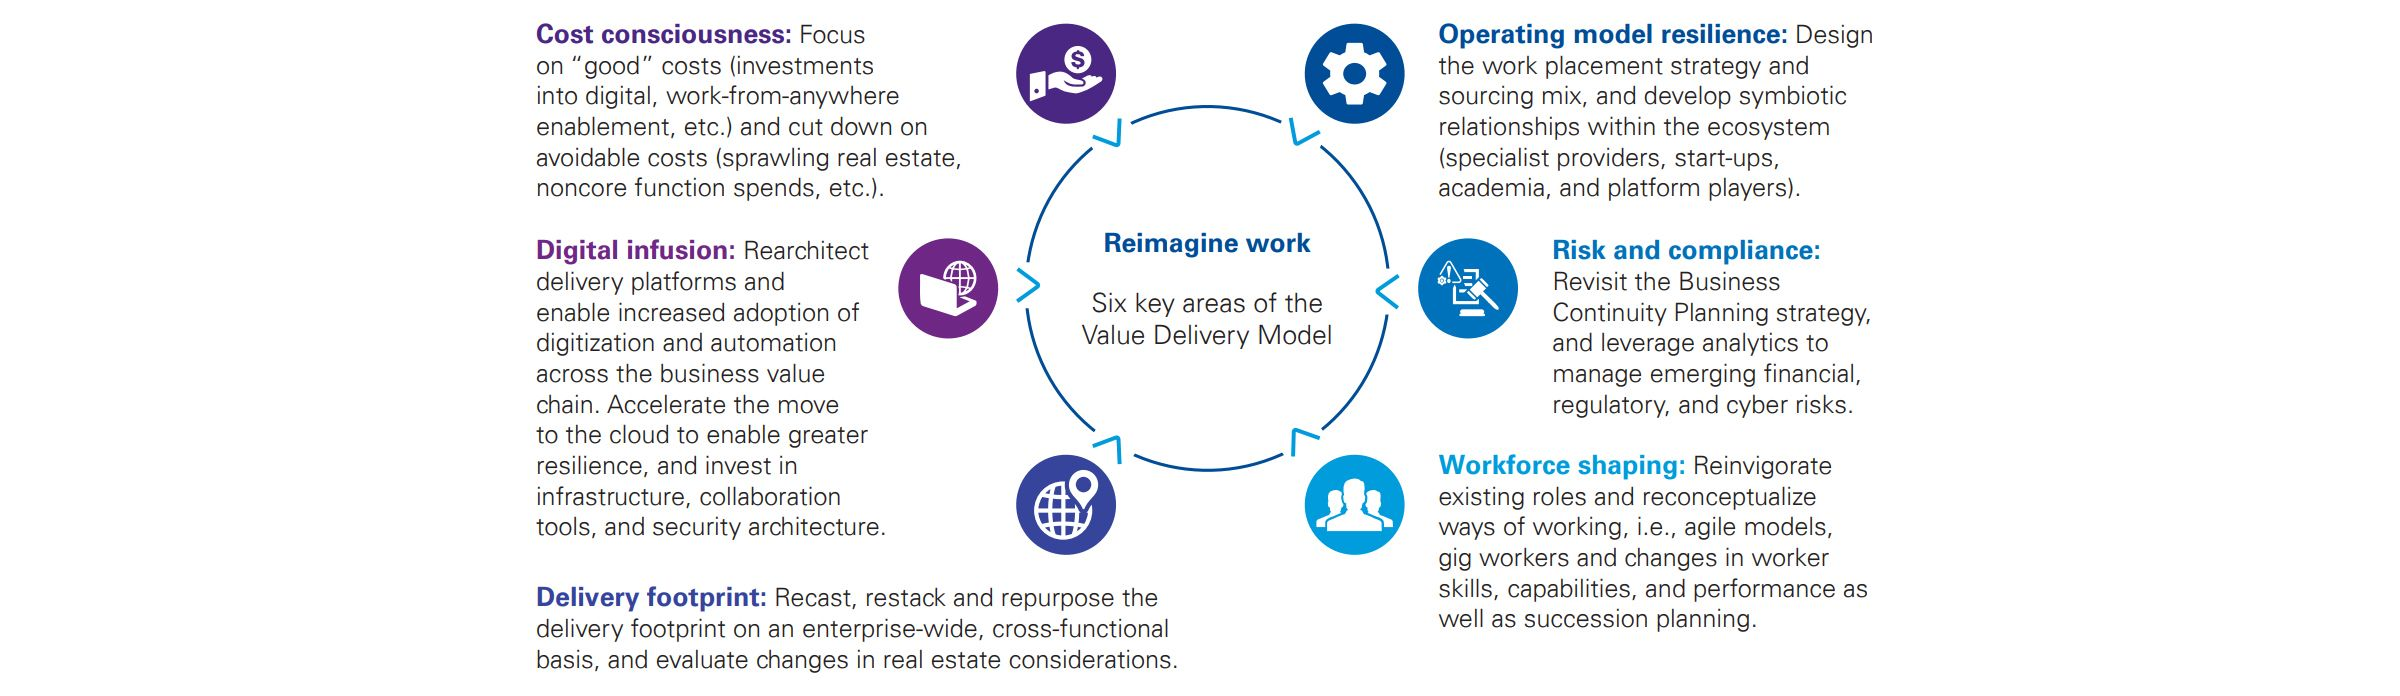 Reimagine work: Six key areas of the Value Delivery Model